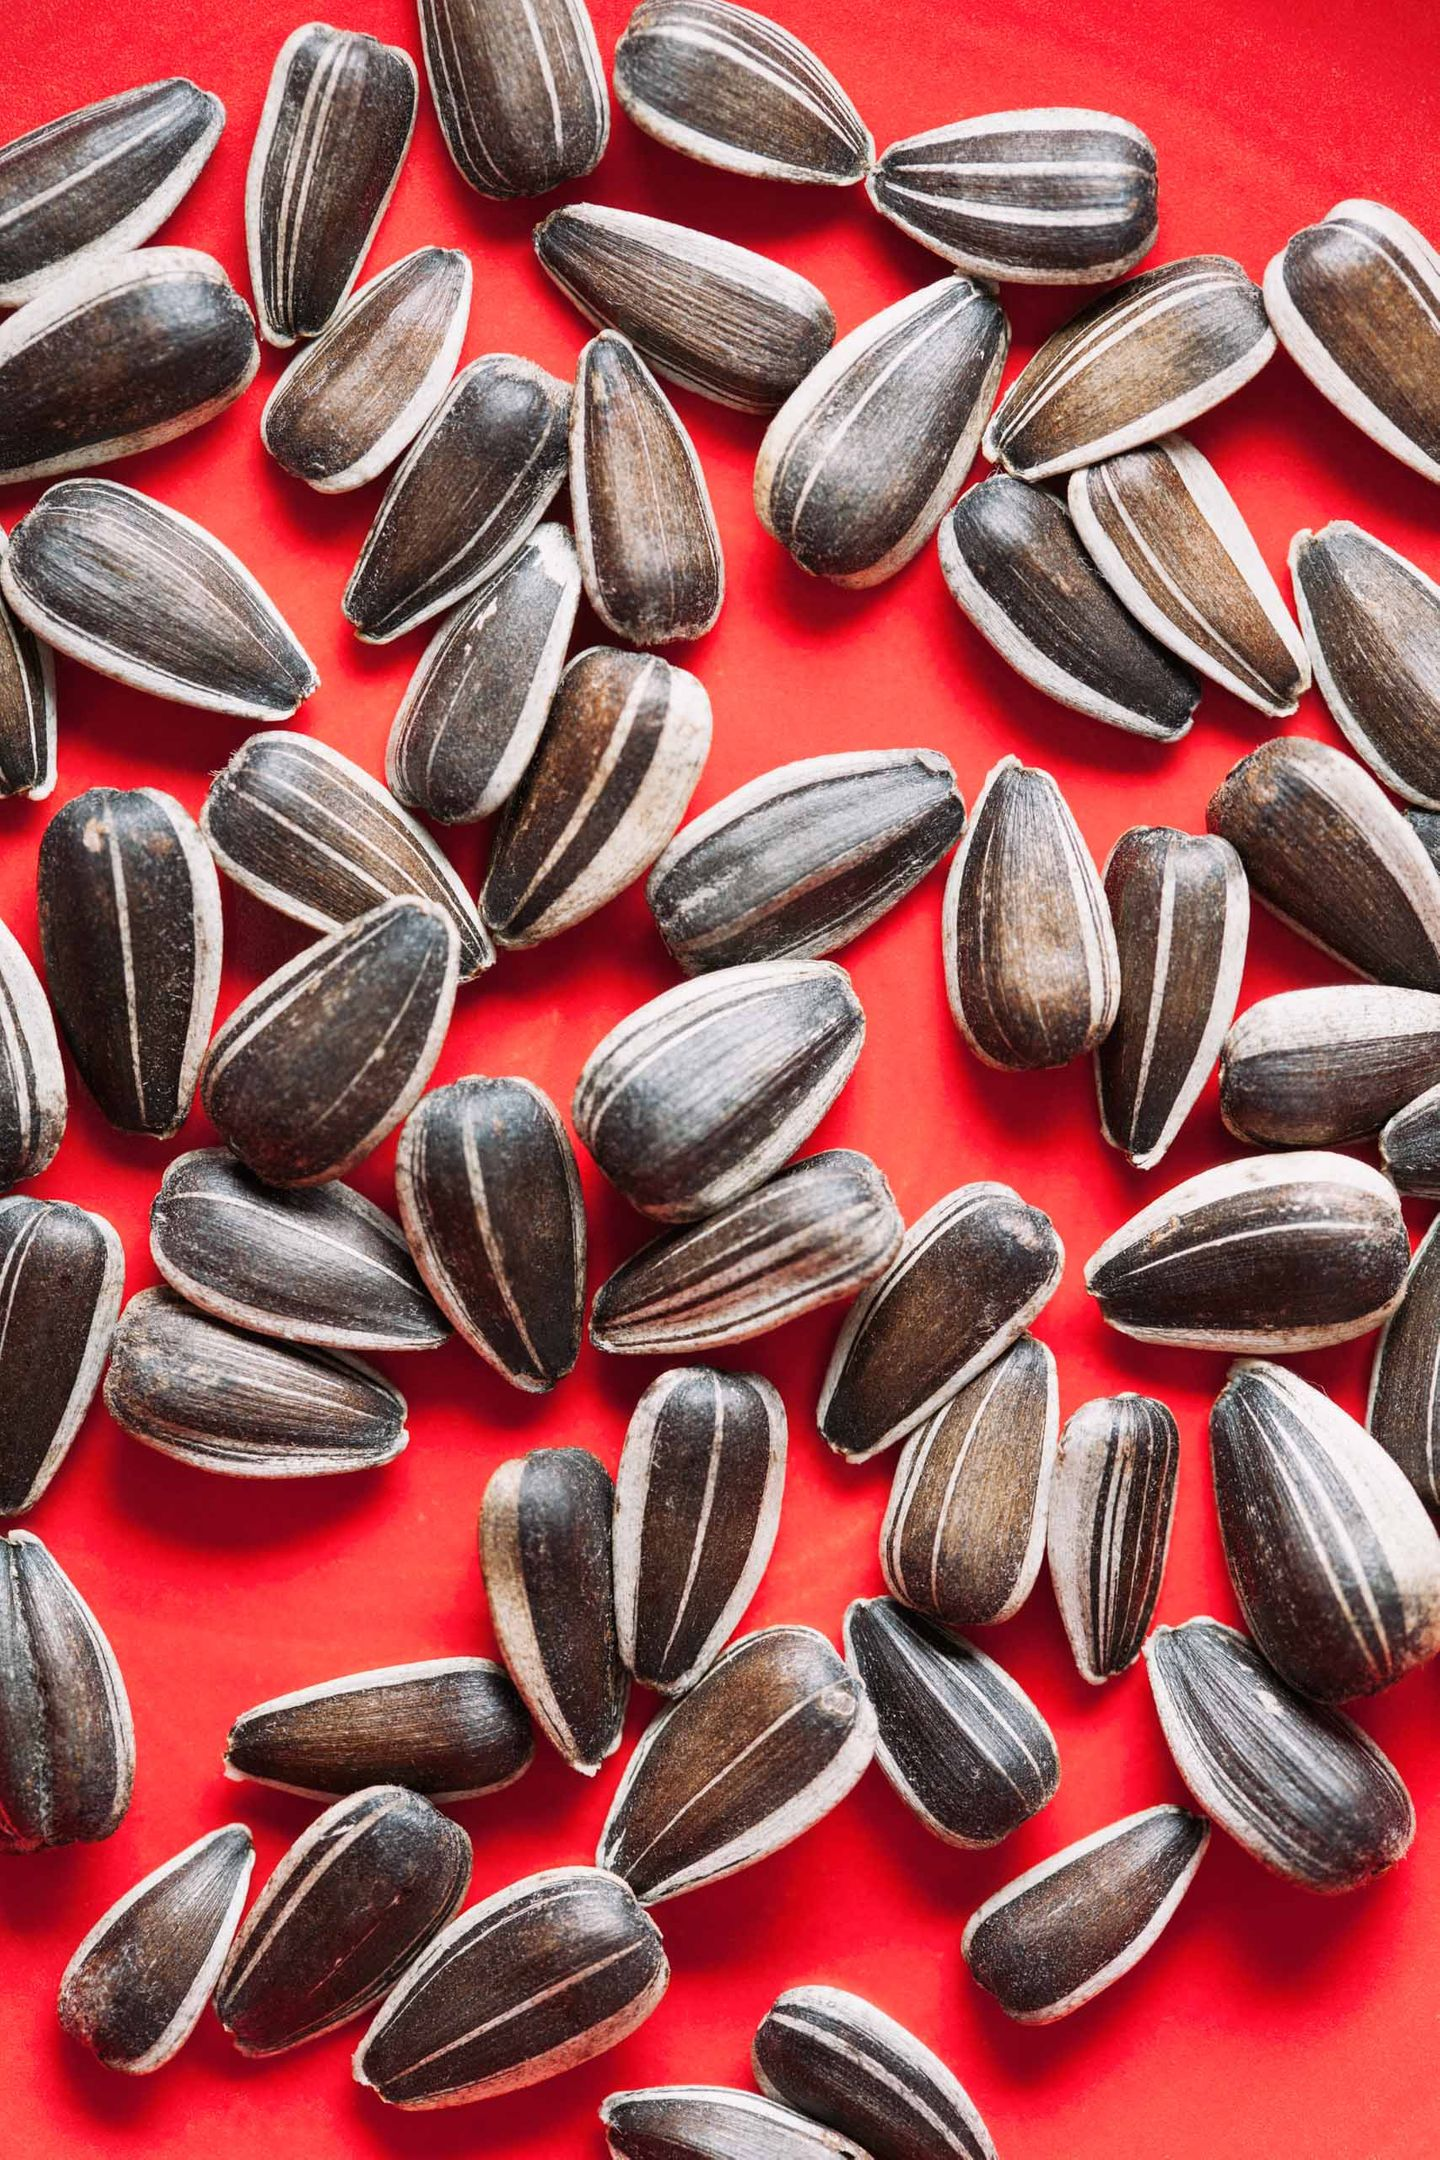 Whole sunflower seeds in shell on red surface